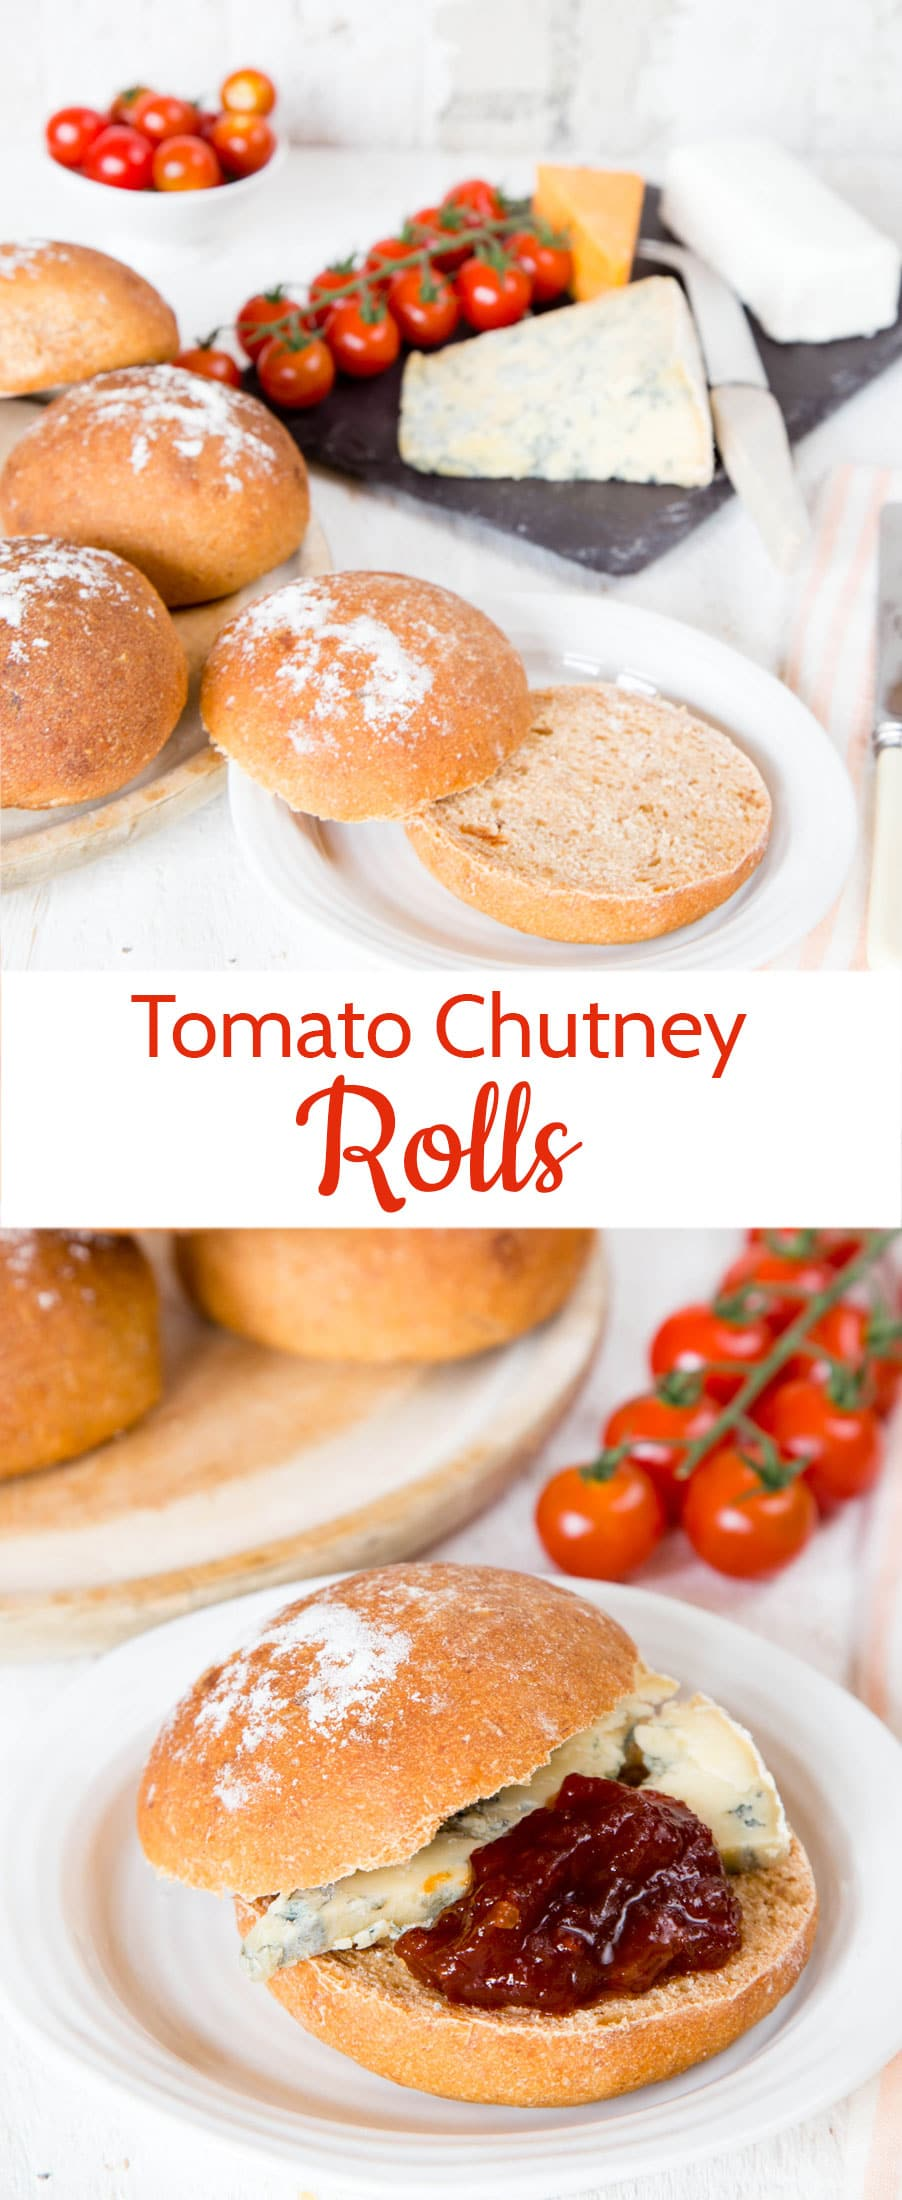 Tomato chutney rolls are a wonderful way to use up a half jar of chutney